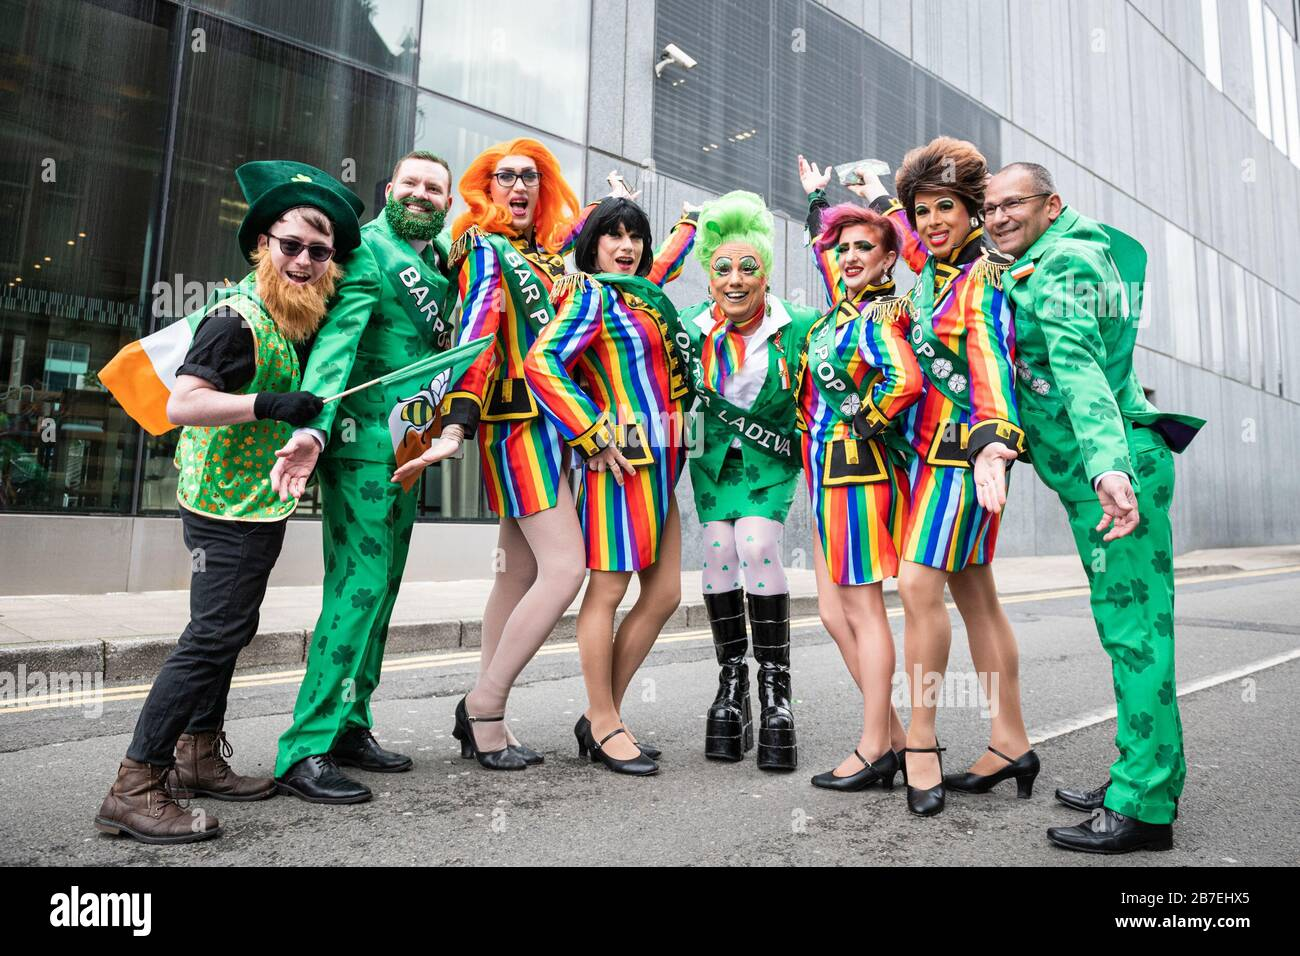 Manchester Halloween Parade 2020 Manchester, UK. 15th Mar, 2020. St. Patricks day parade and its